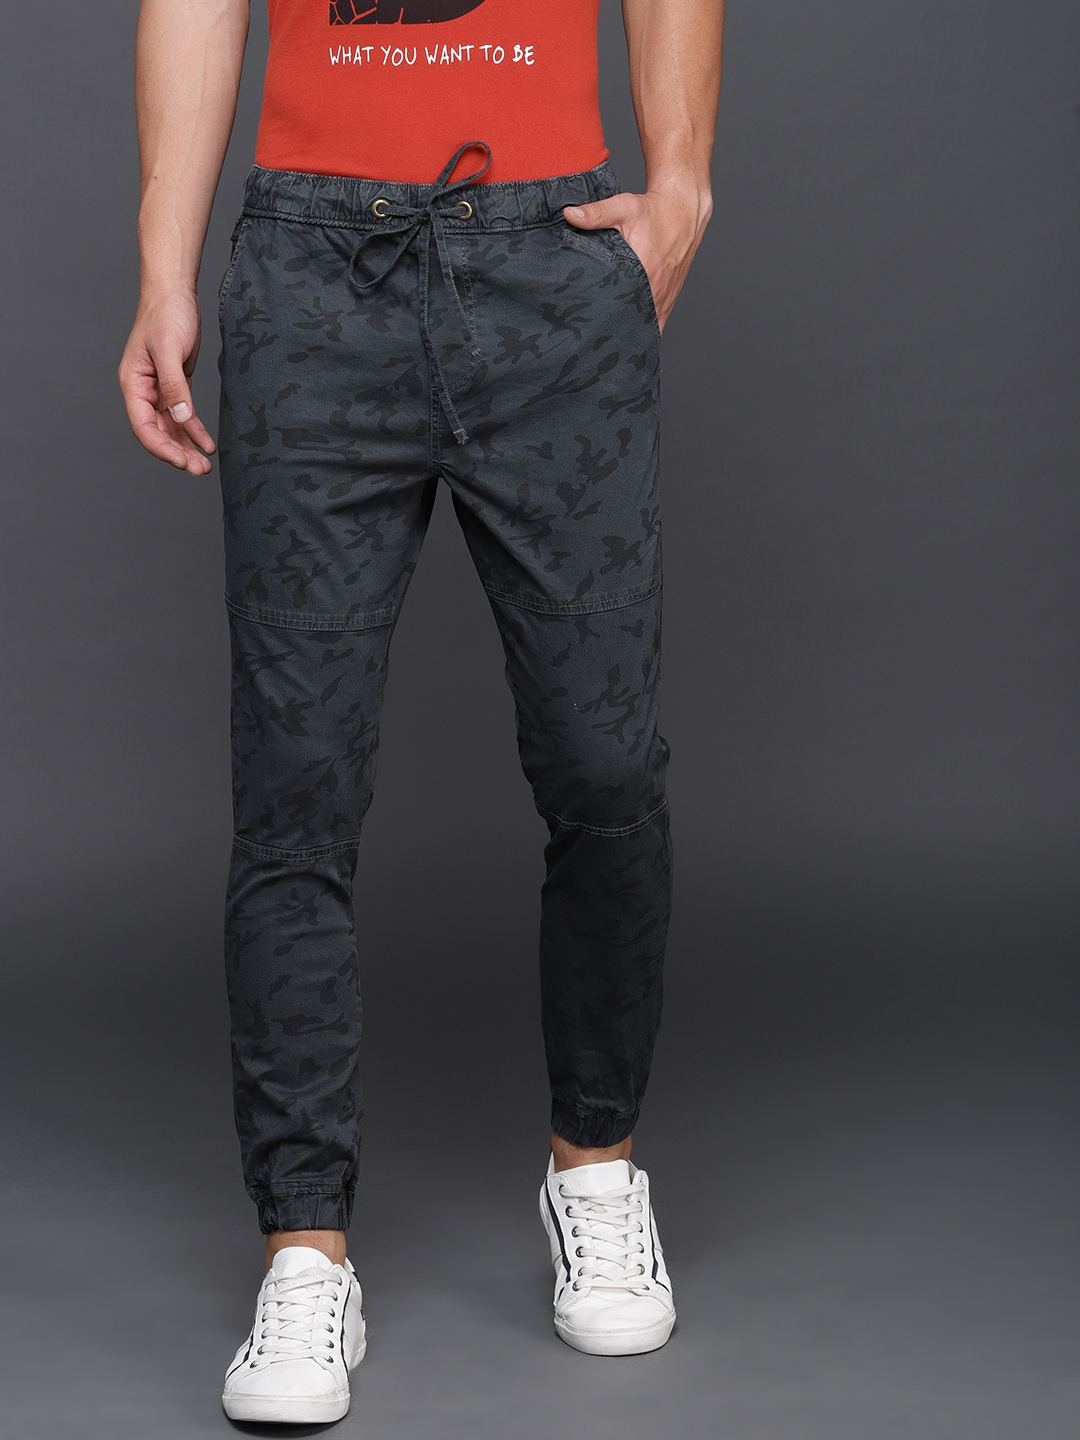 aa60e8766487 Joggers - Buy Joggers Pants For Men and Women Online - Myntra